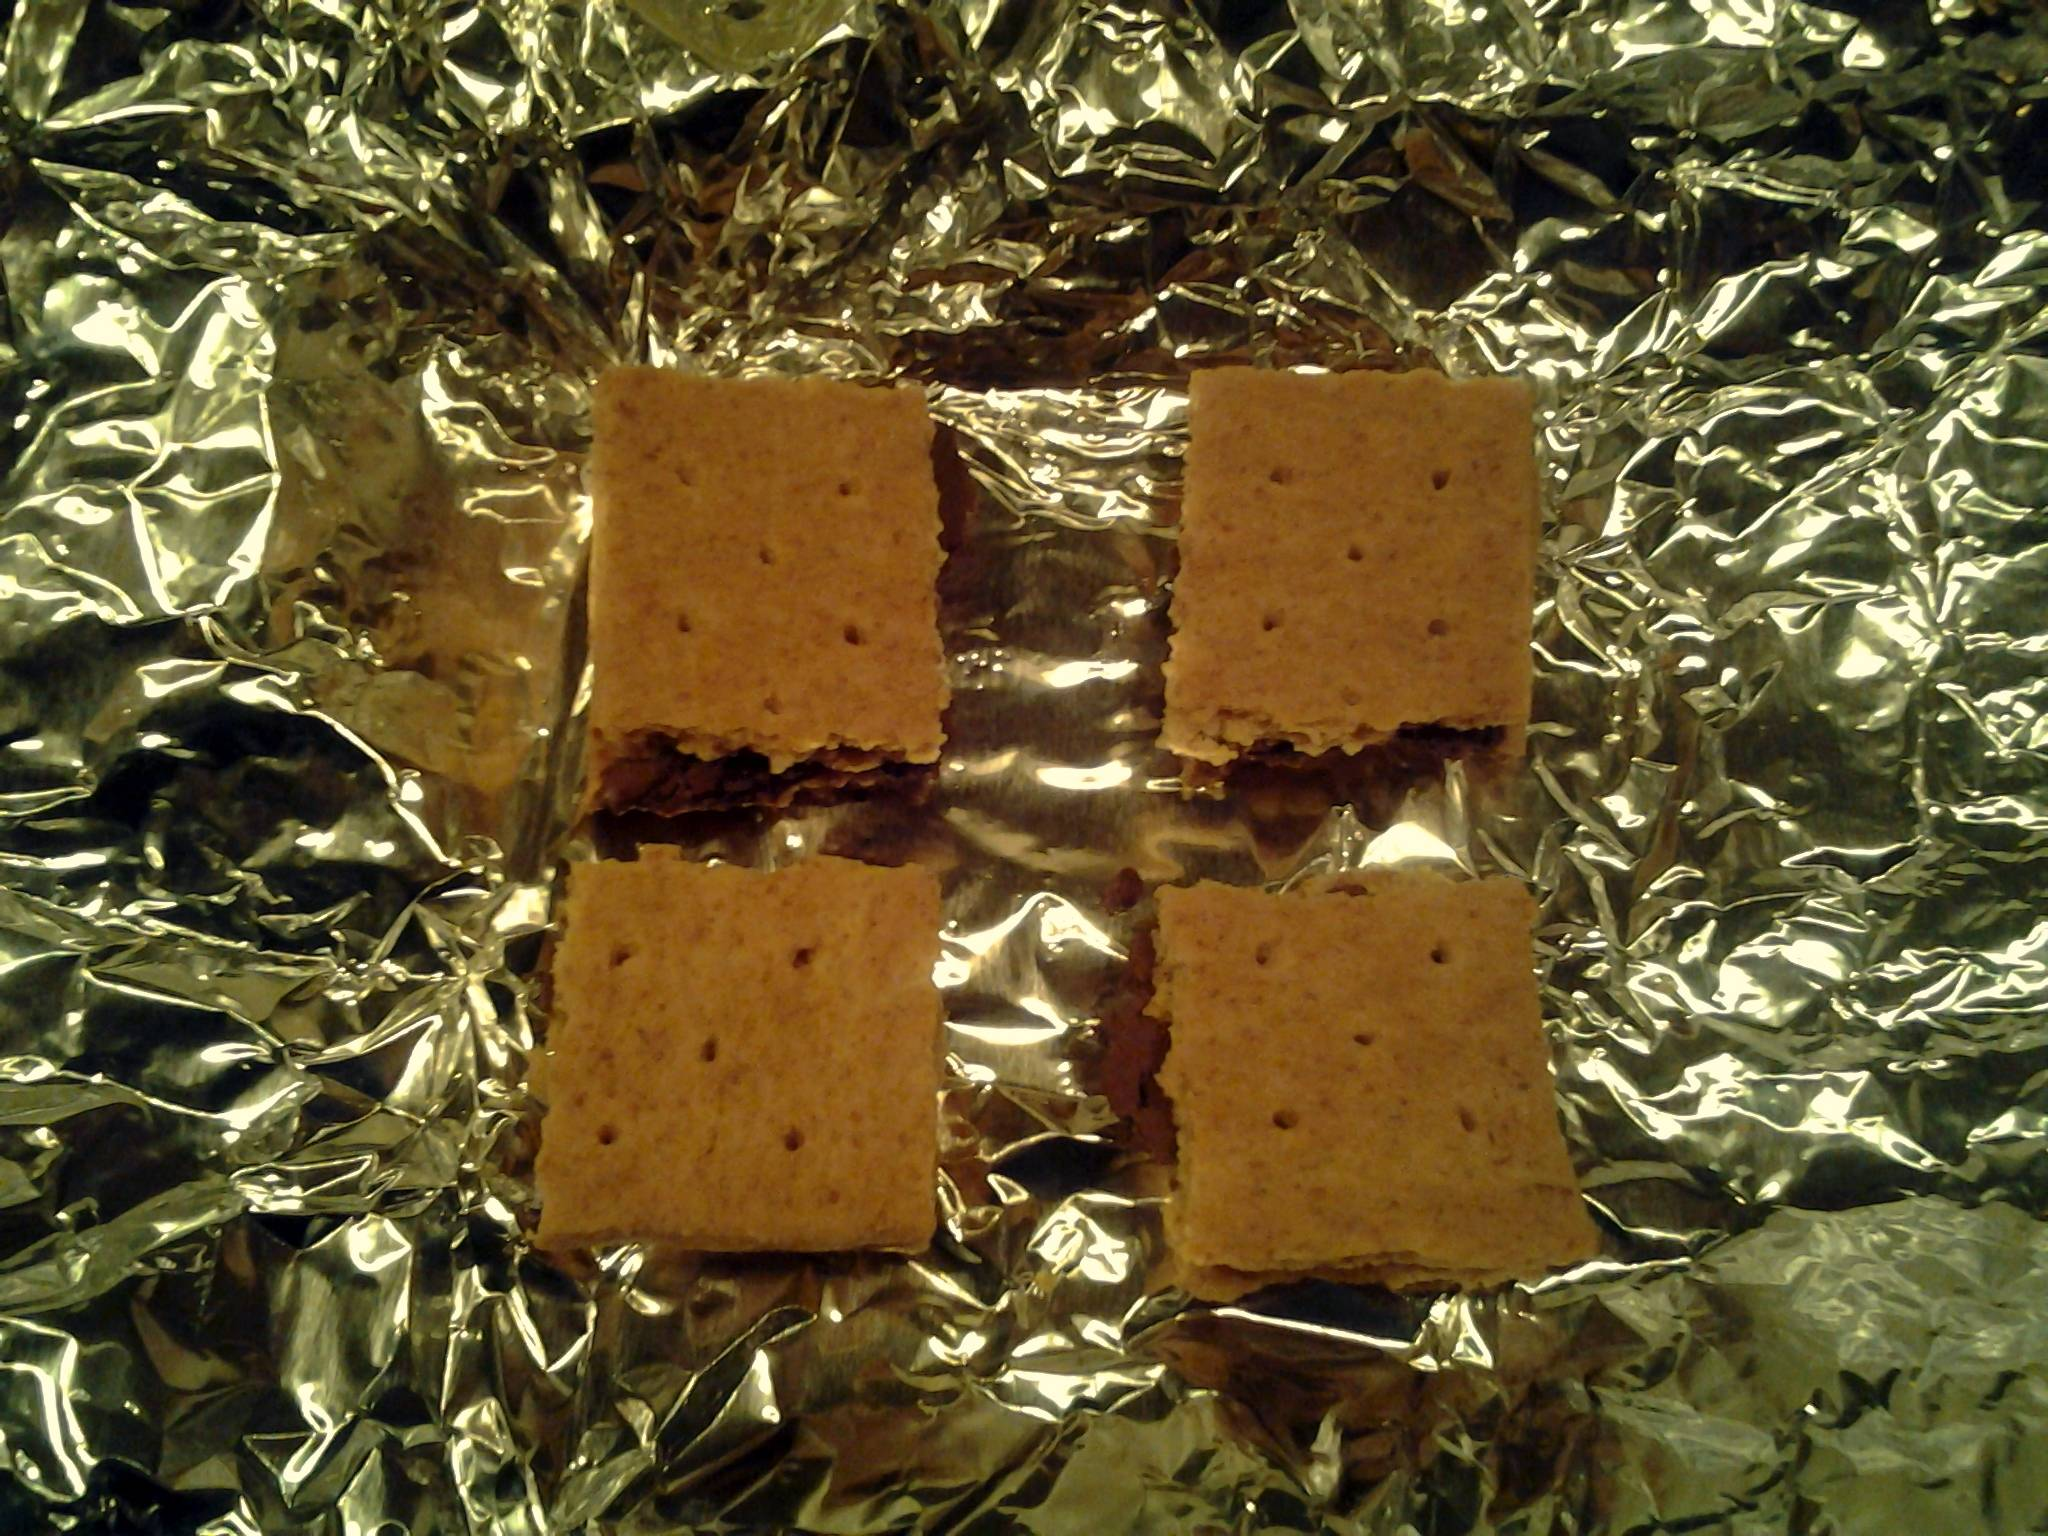 These are your four finished doses of cannabis Nutella firecrackers